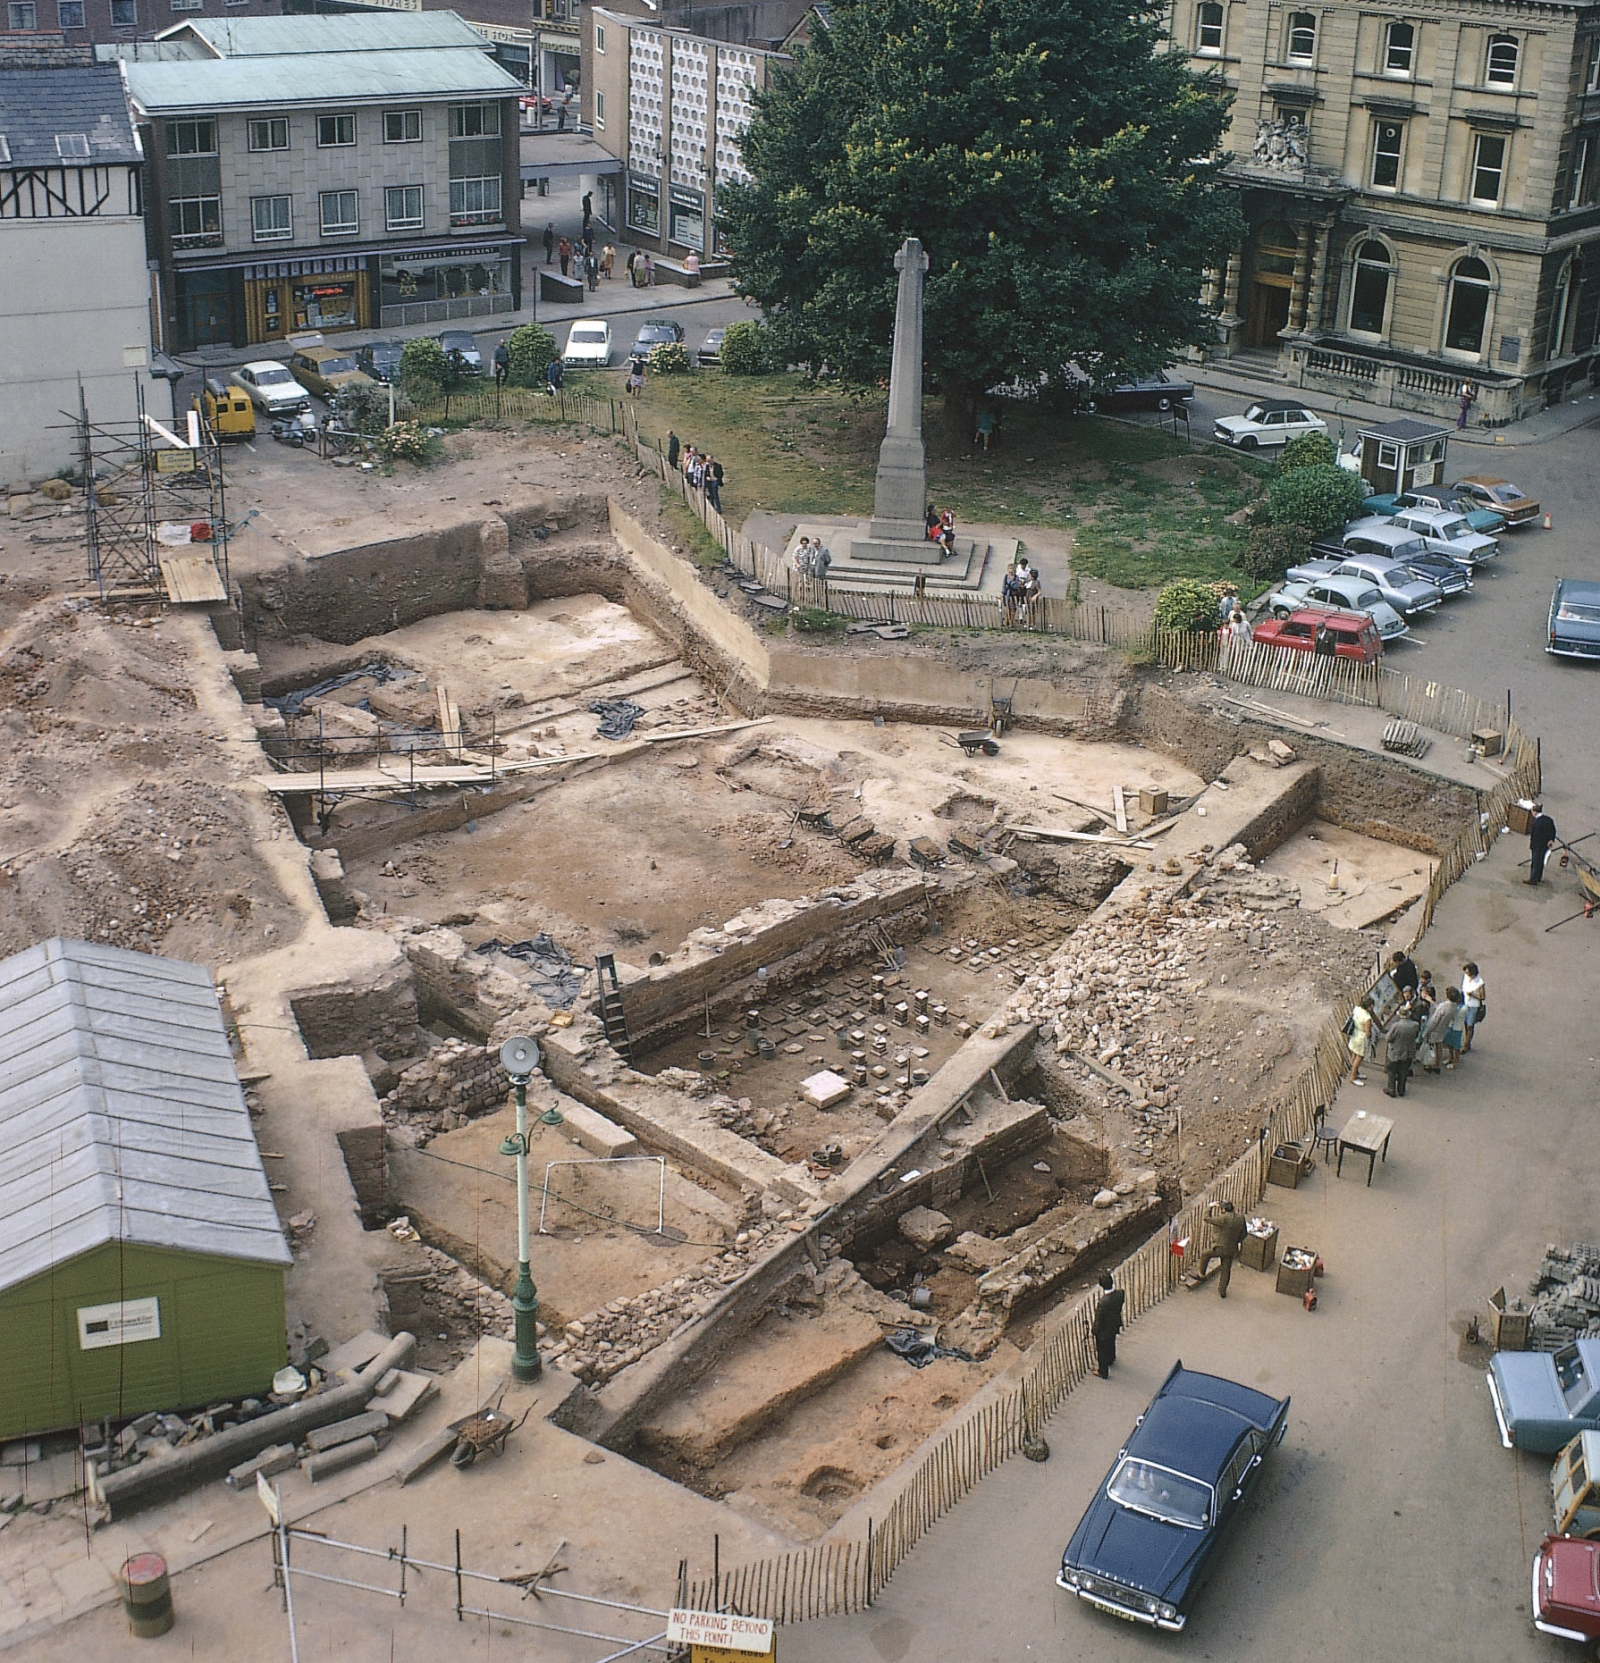 Roman ruins were discovered under the Exeter Cathedral Green in 1971 and have lain underground for almost 44 years, waiting for the funds to restore them